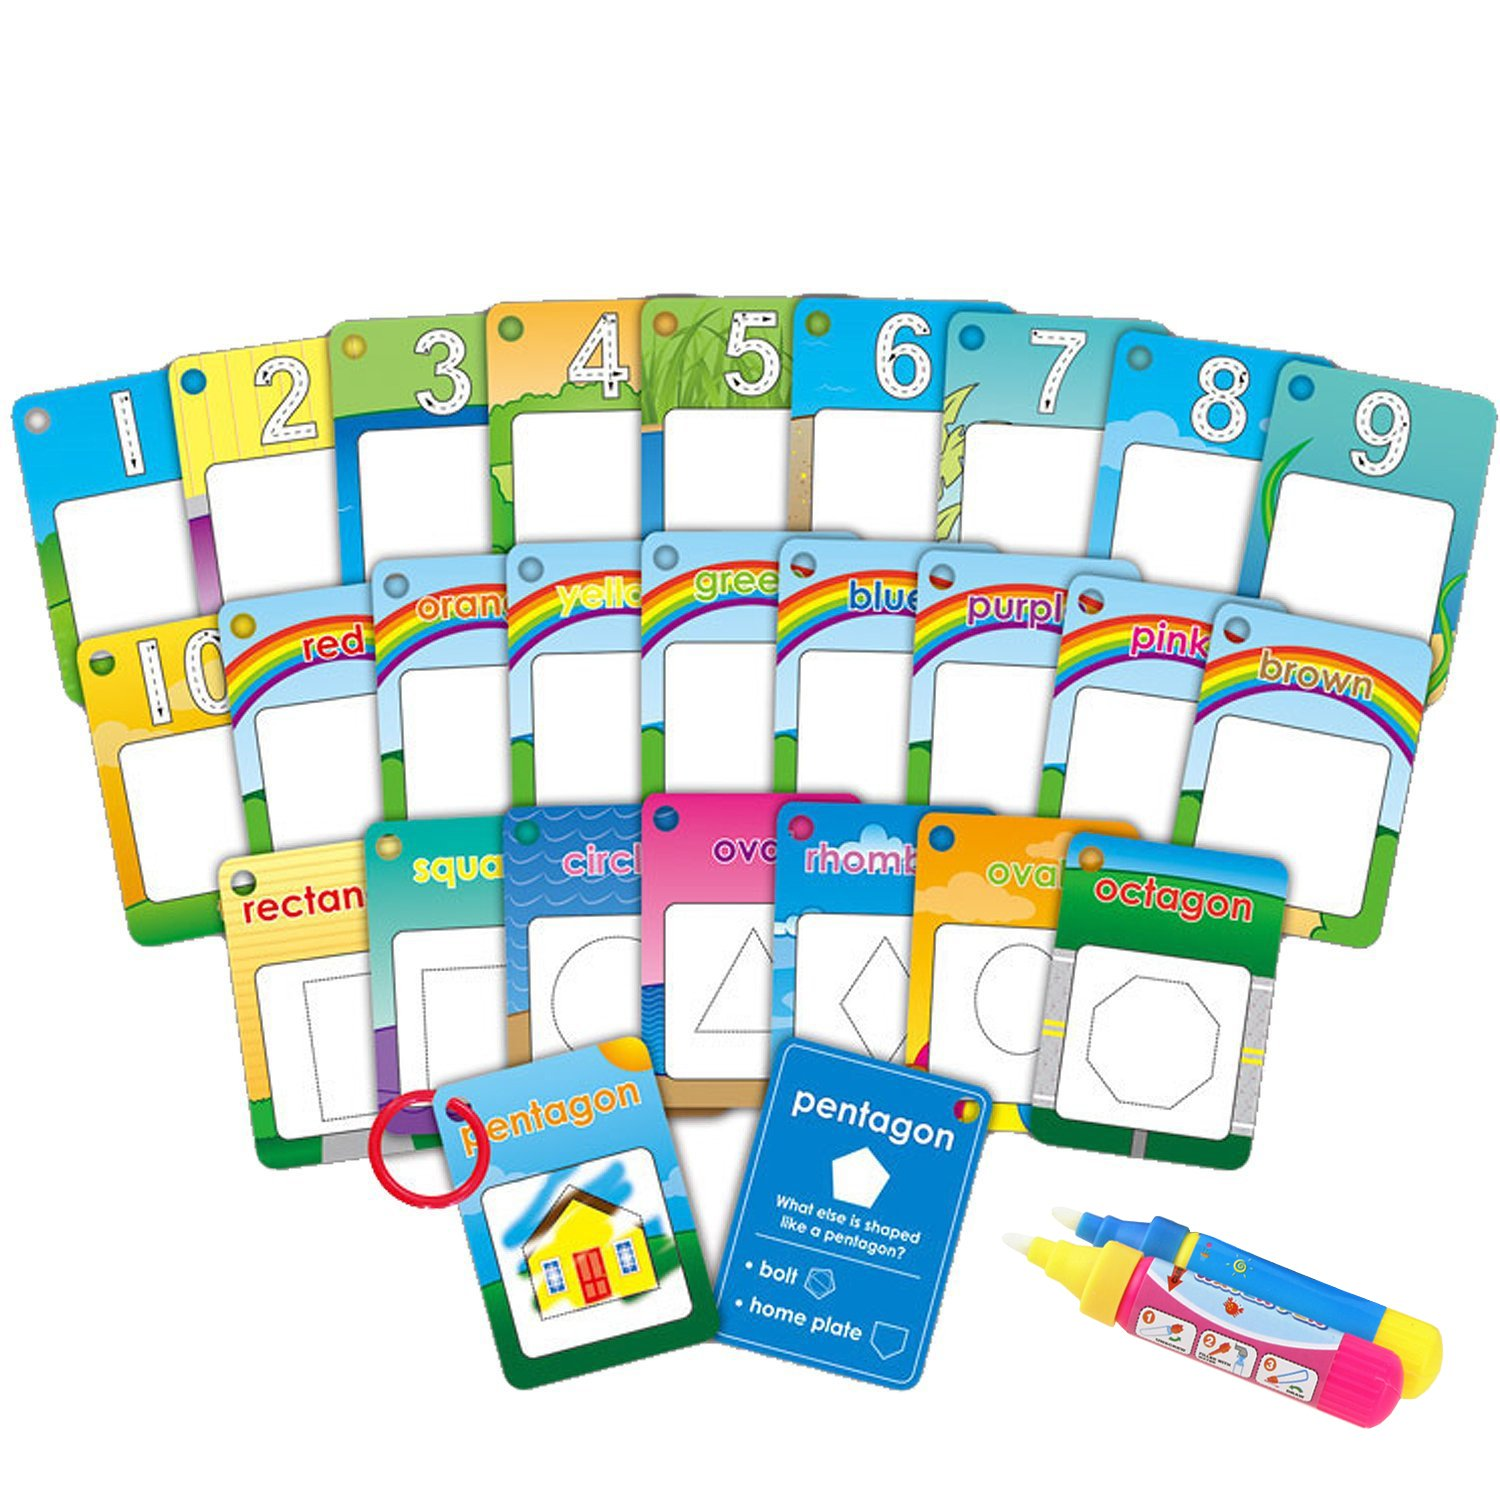 Dorras Water Painting Graffiti Book Card 26pcs Chidren's Early Education Cognitive Cards 1-9 Number Colors and Shapes Colouring Doodle Board + 2 Magic Drawing Pens Games Toy for Toddlers Kids Baby